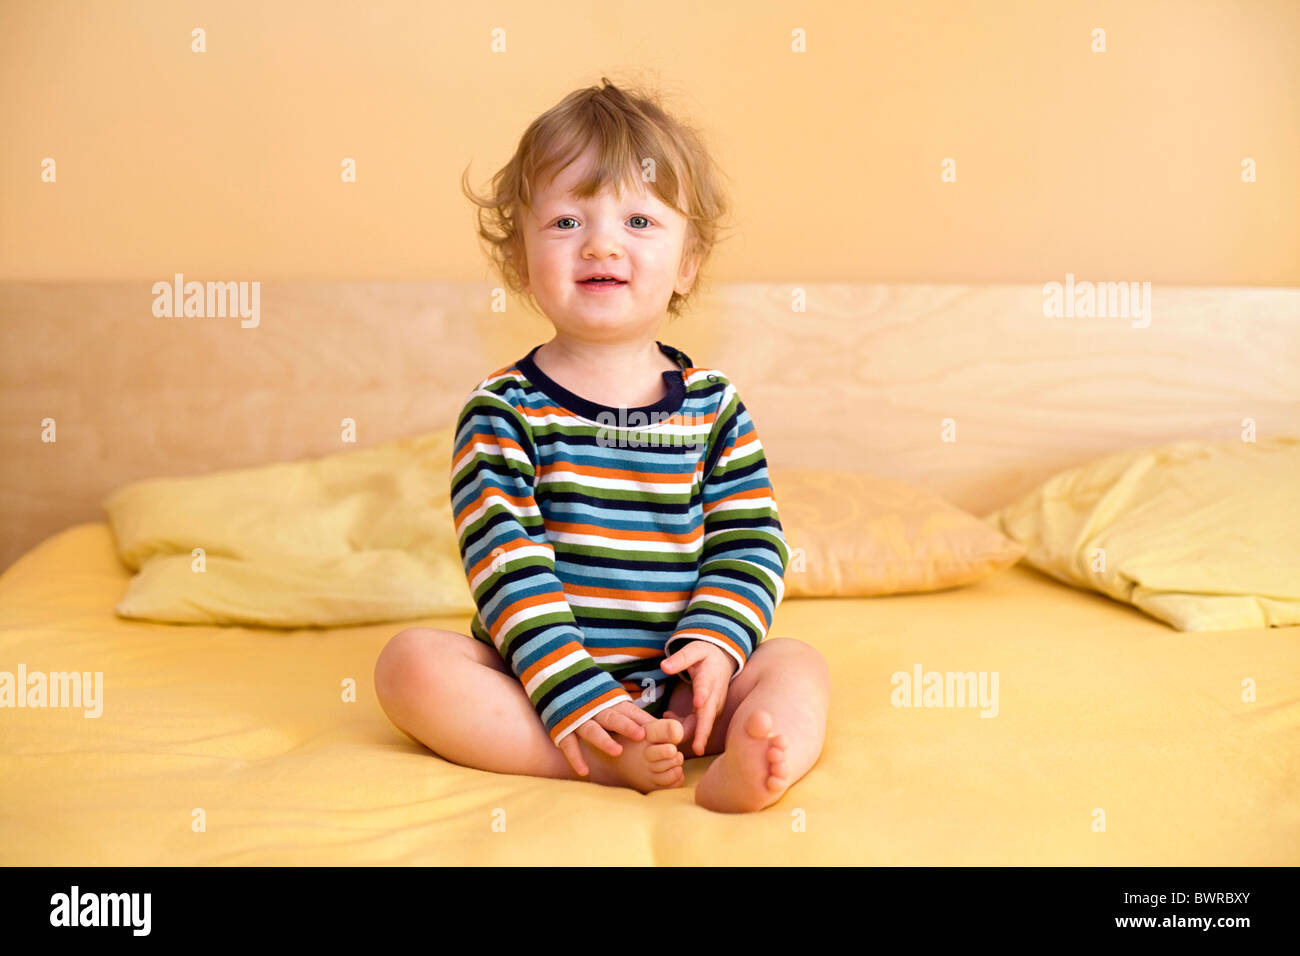 1 2 years old 1 to 2 years old 17 months old alone babies. Black Bedroom Furniture Sets. Home Design Ideas